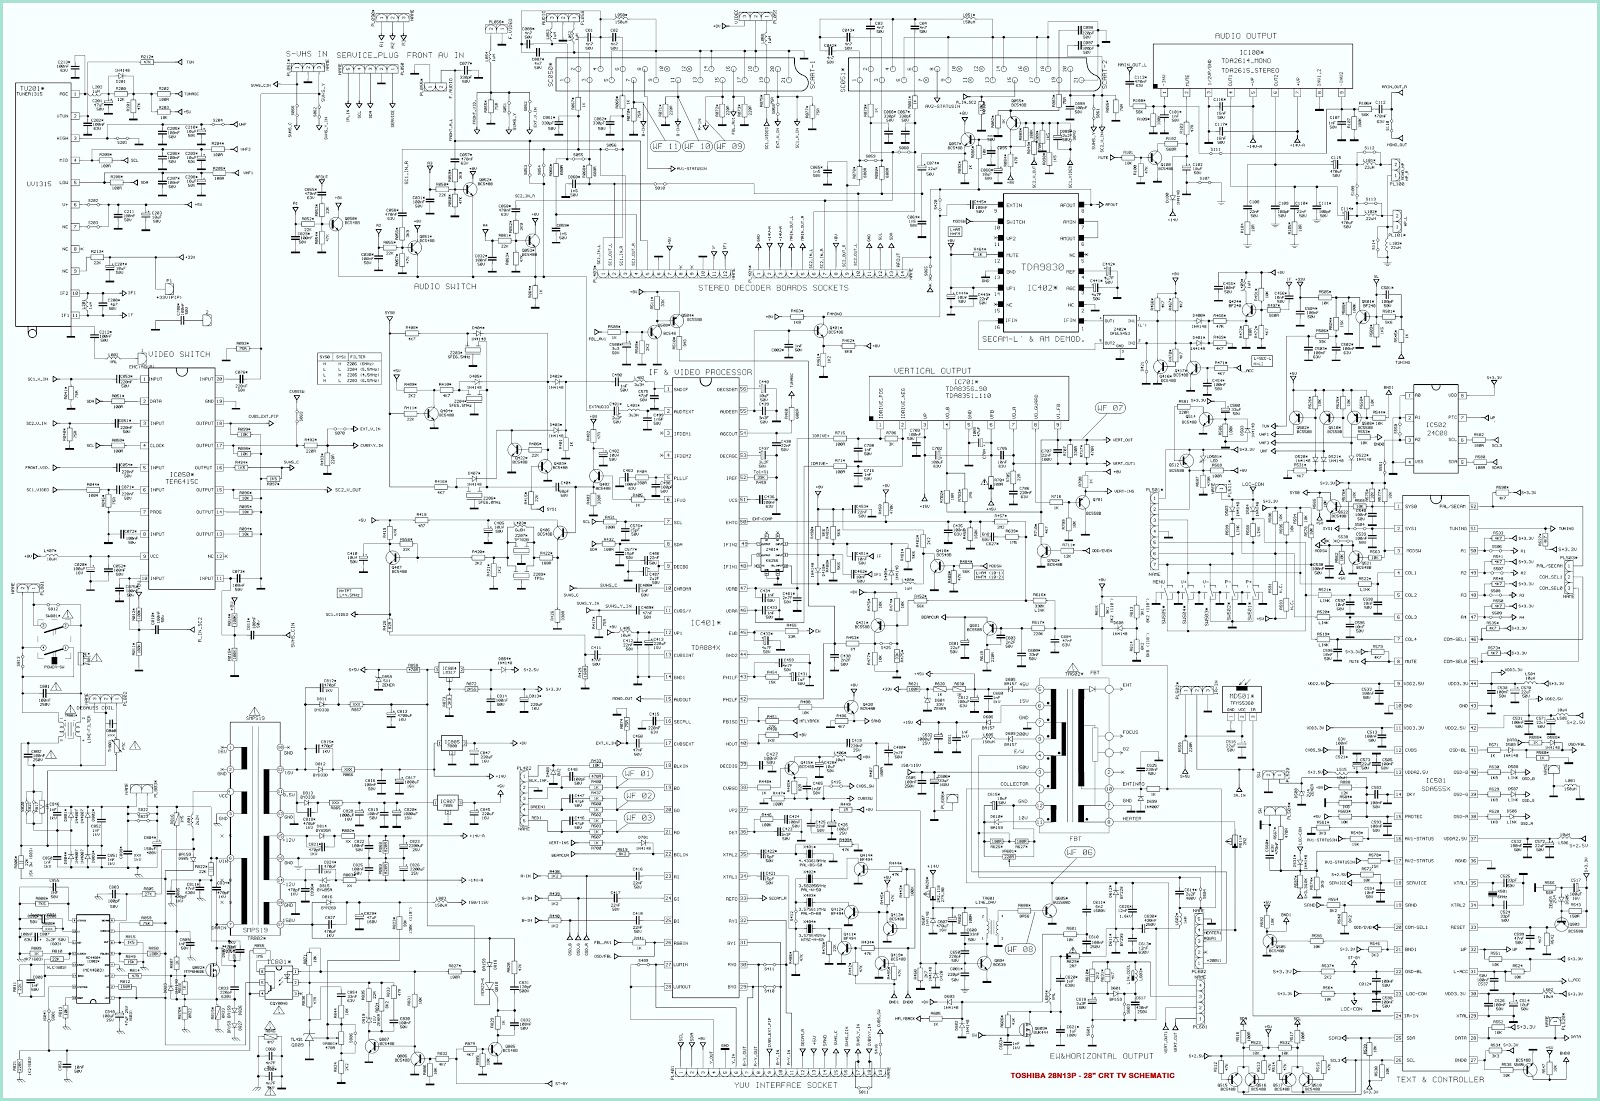 Toshiba 28n13p 28 Inch Crt Tv Circuit Diagram